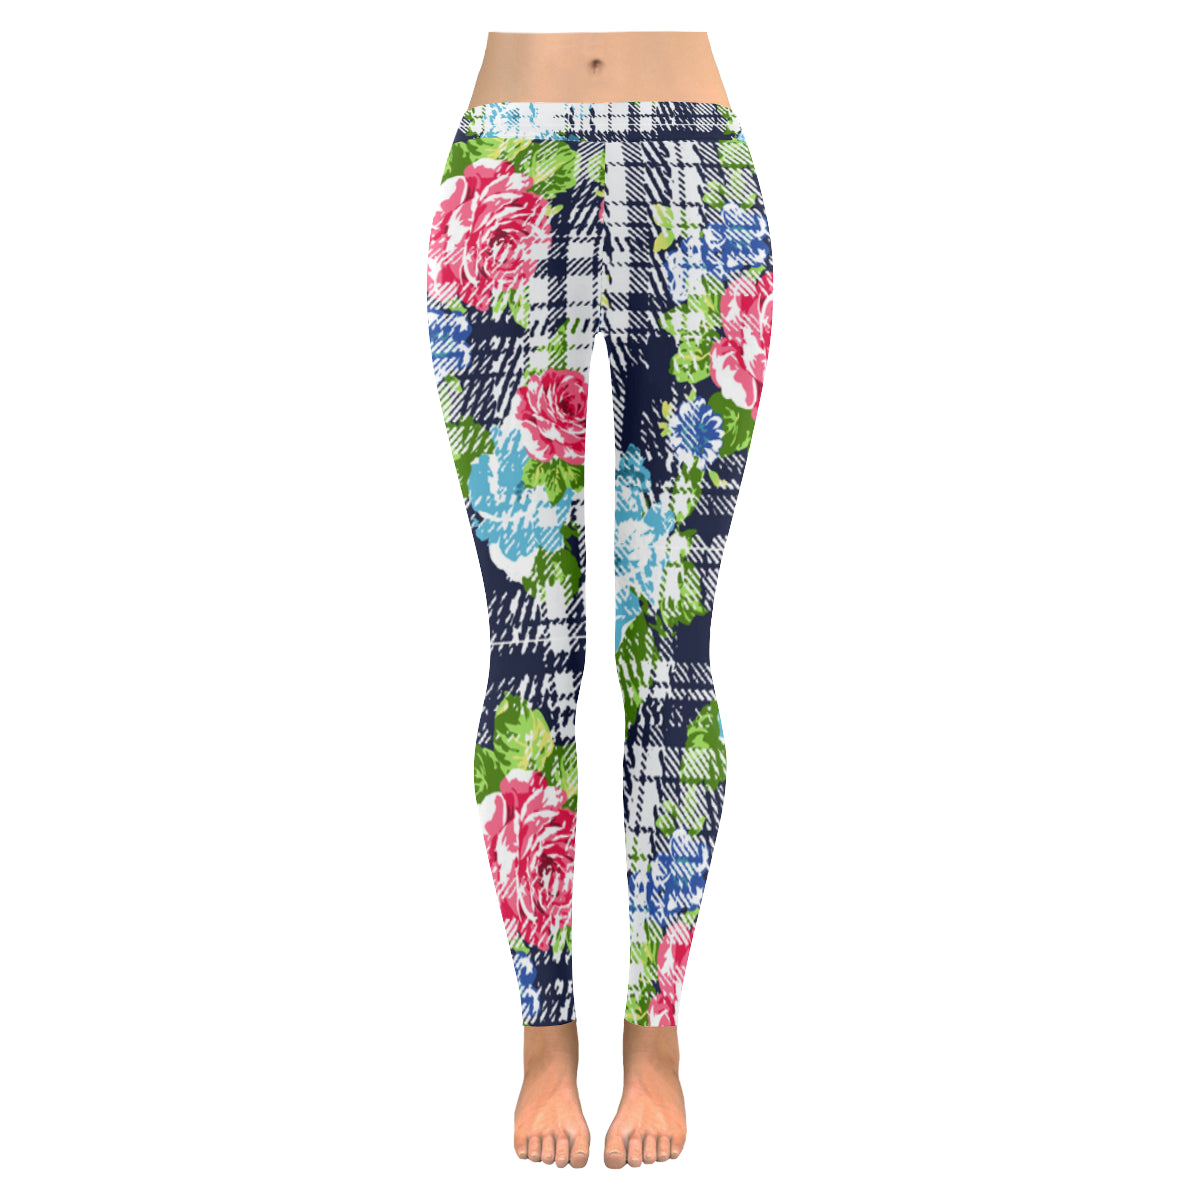 DIANA Low Rise Leggings (Model L05)